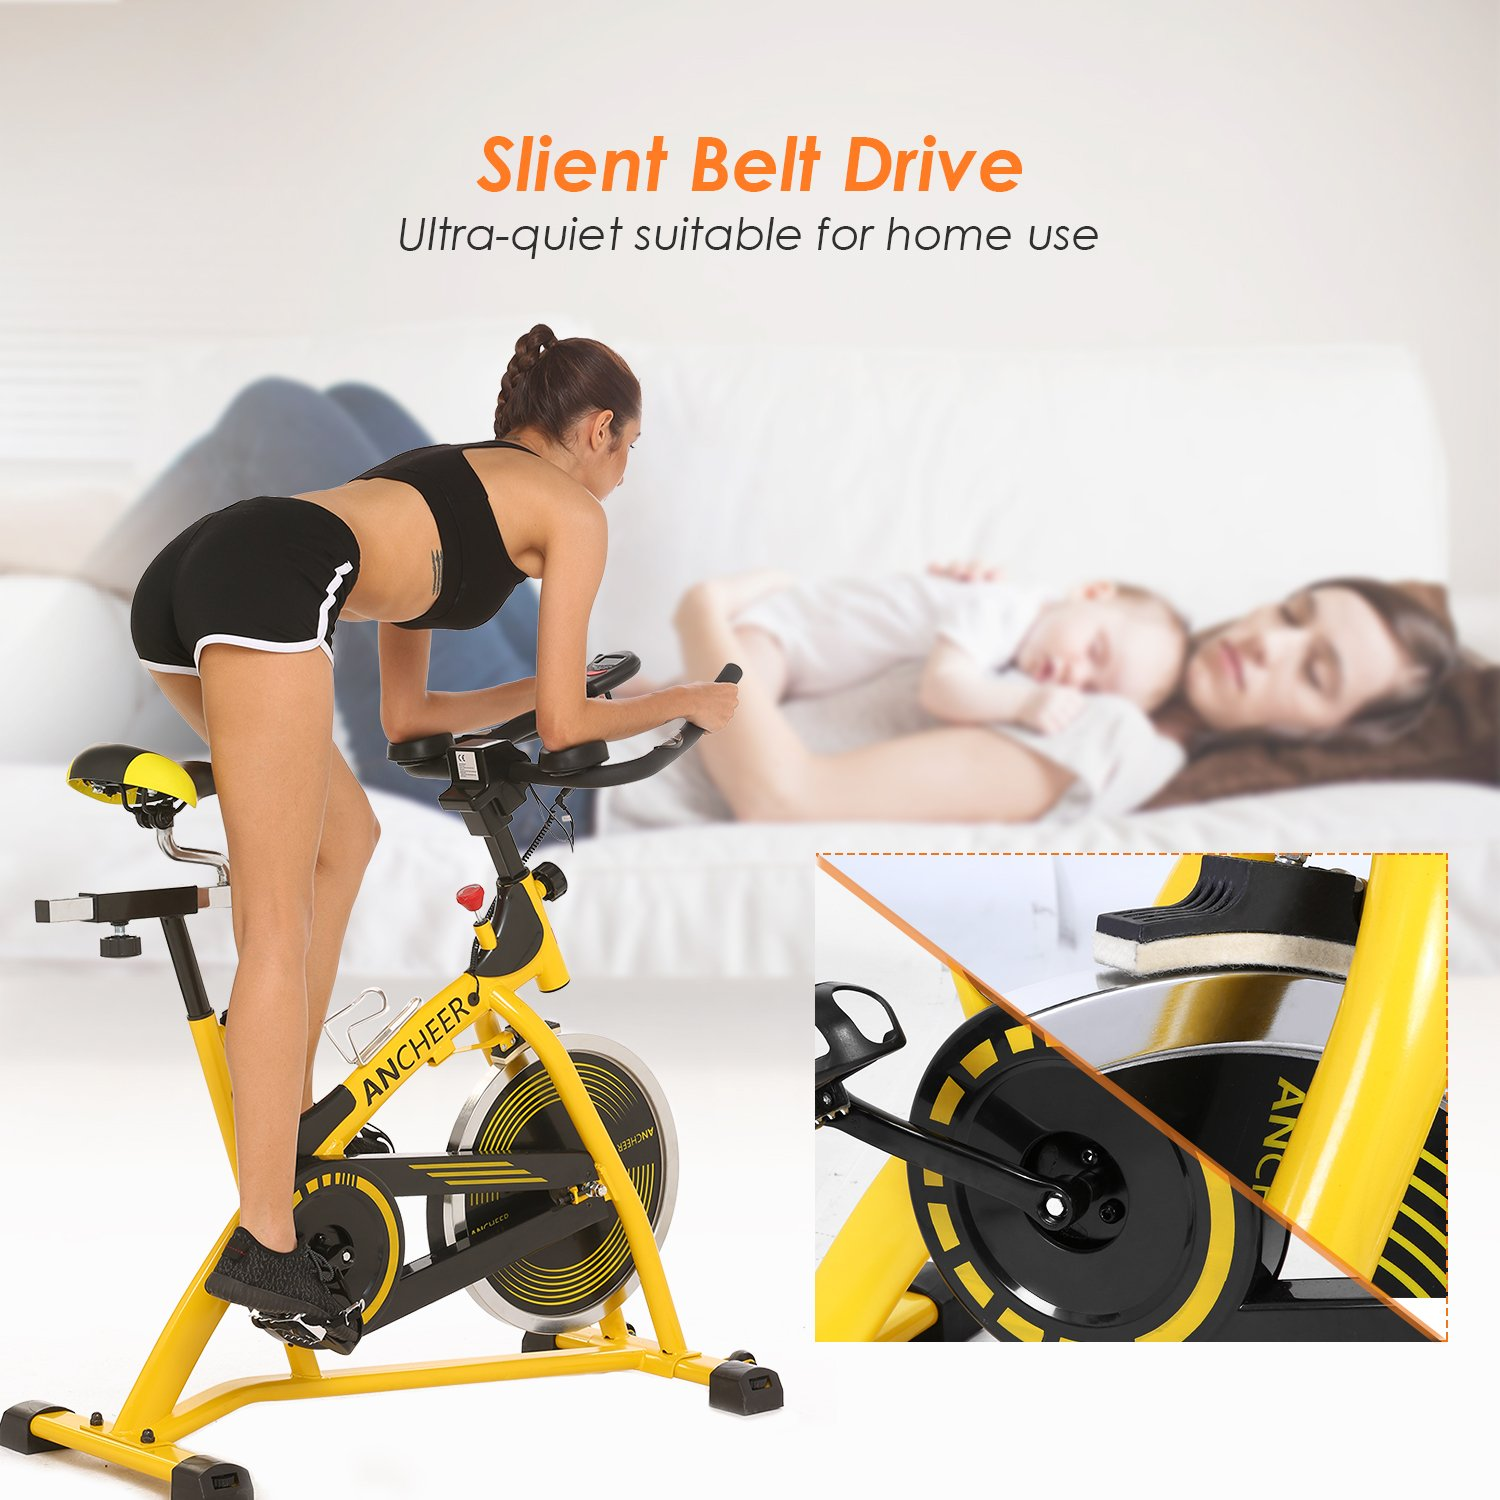 ANCHEER Stationary Bike, 40 LBS Flywheel Belt Drive Indoor Cycling Exercise Bike with Pulse, Elbow Tray (Model: ANCHEER-A5001) (Yellow) by ANCHEER (Image #5)